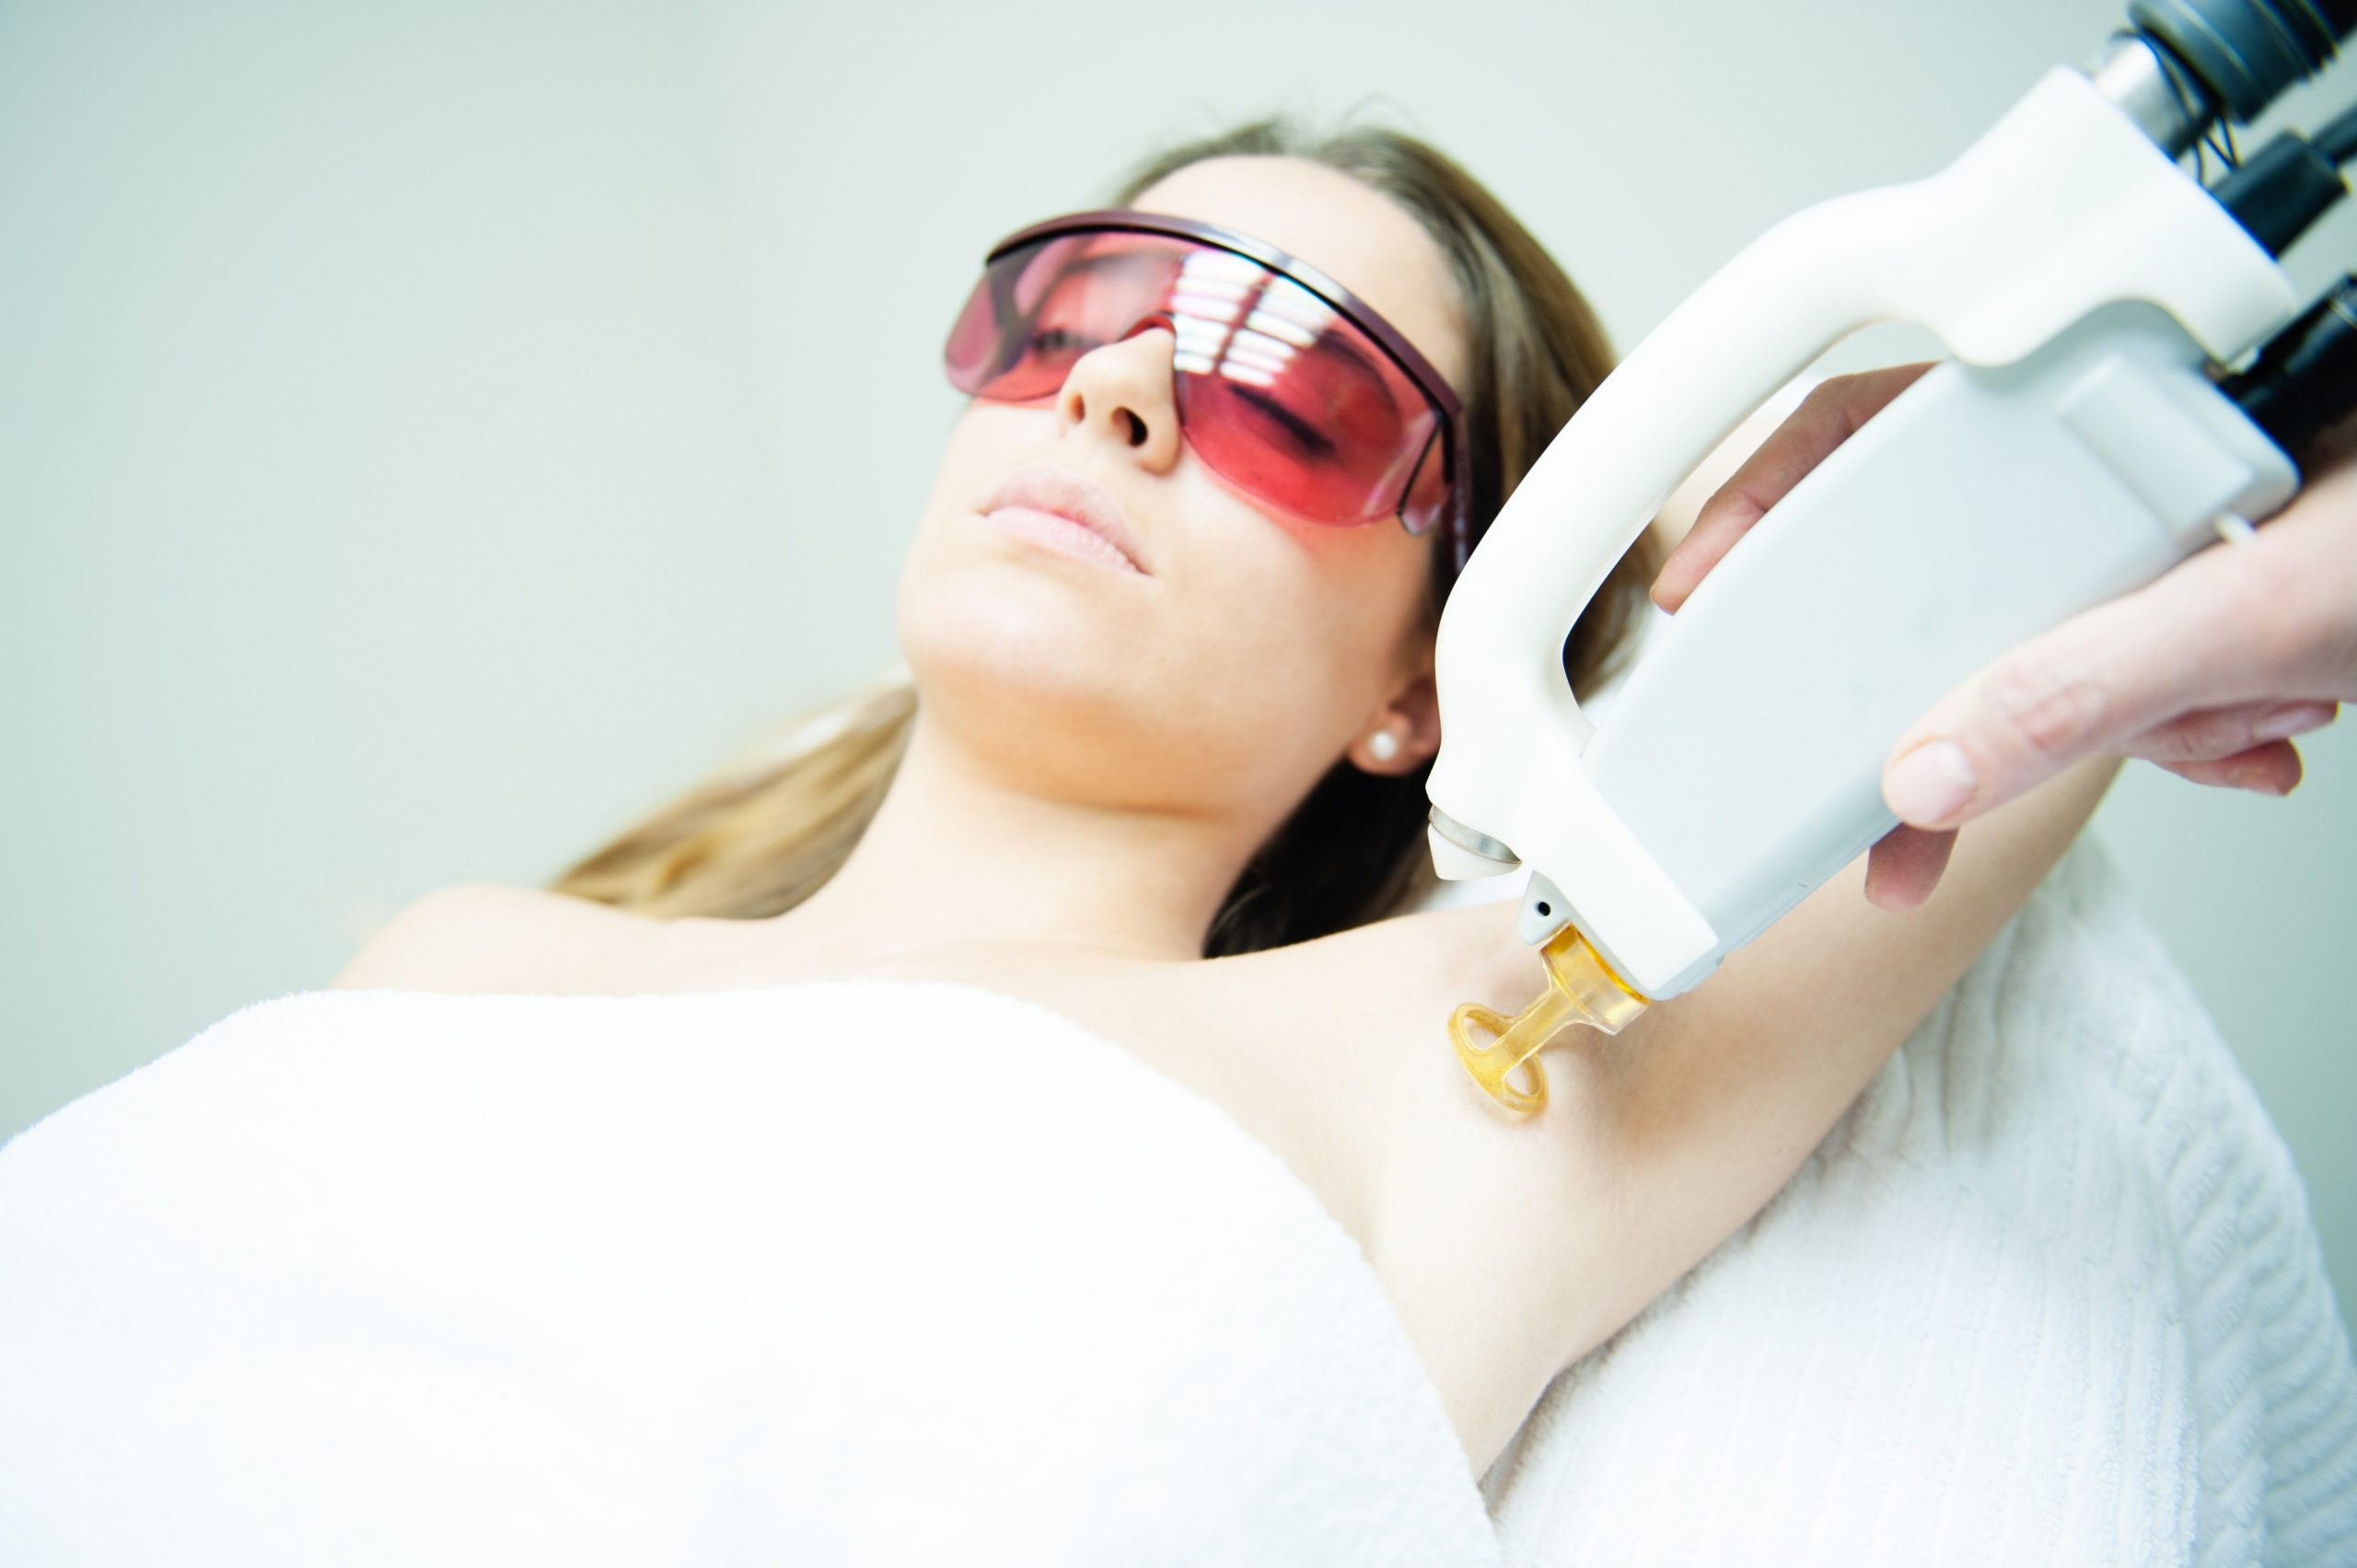 Why should one opt for laser hair removal?